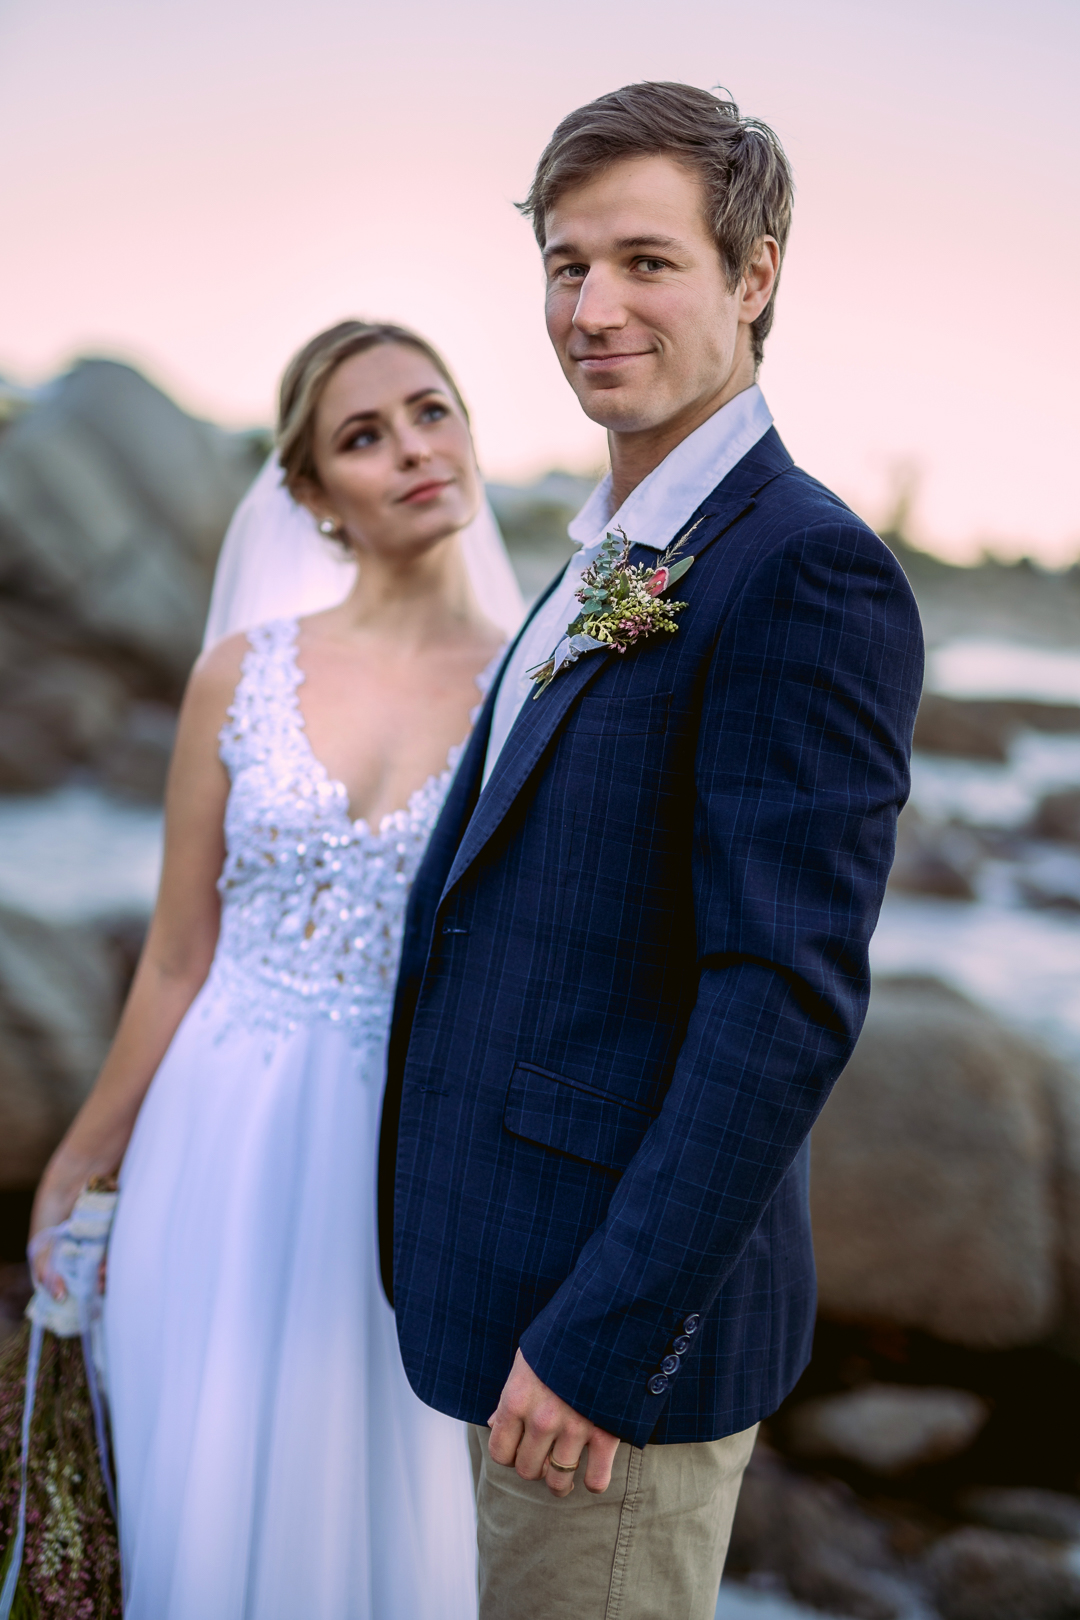 Elopement Photography Cape Town Clifton by Cape Image Co. (small file)-12.jpg